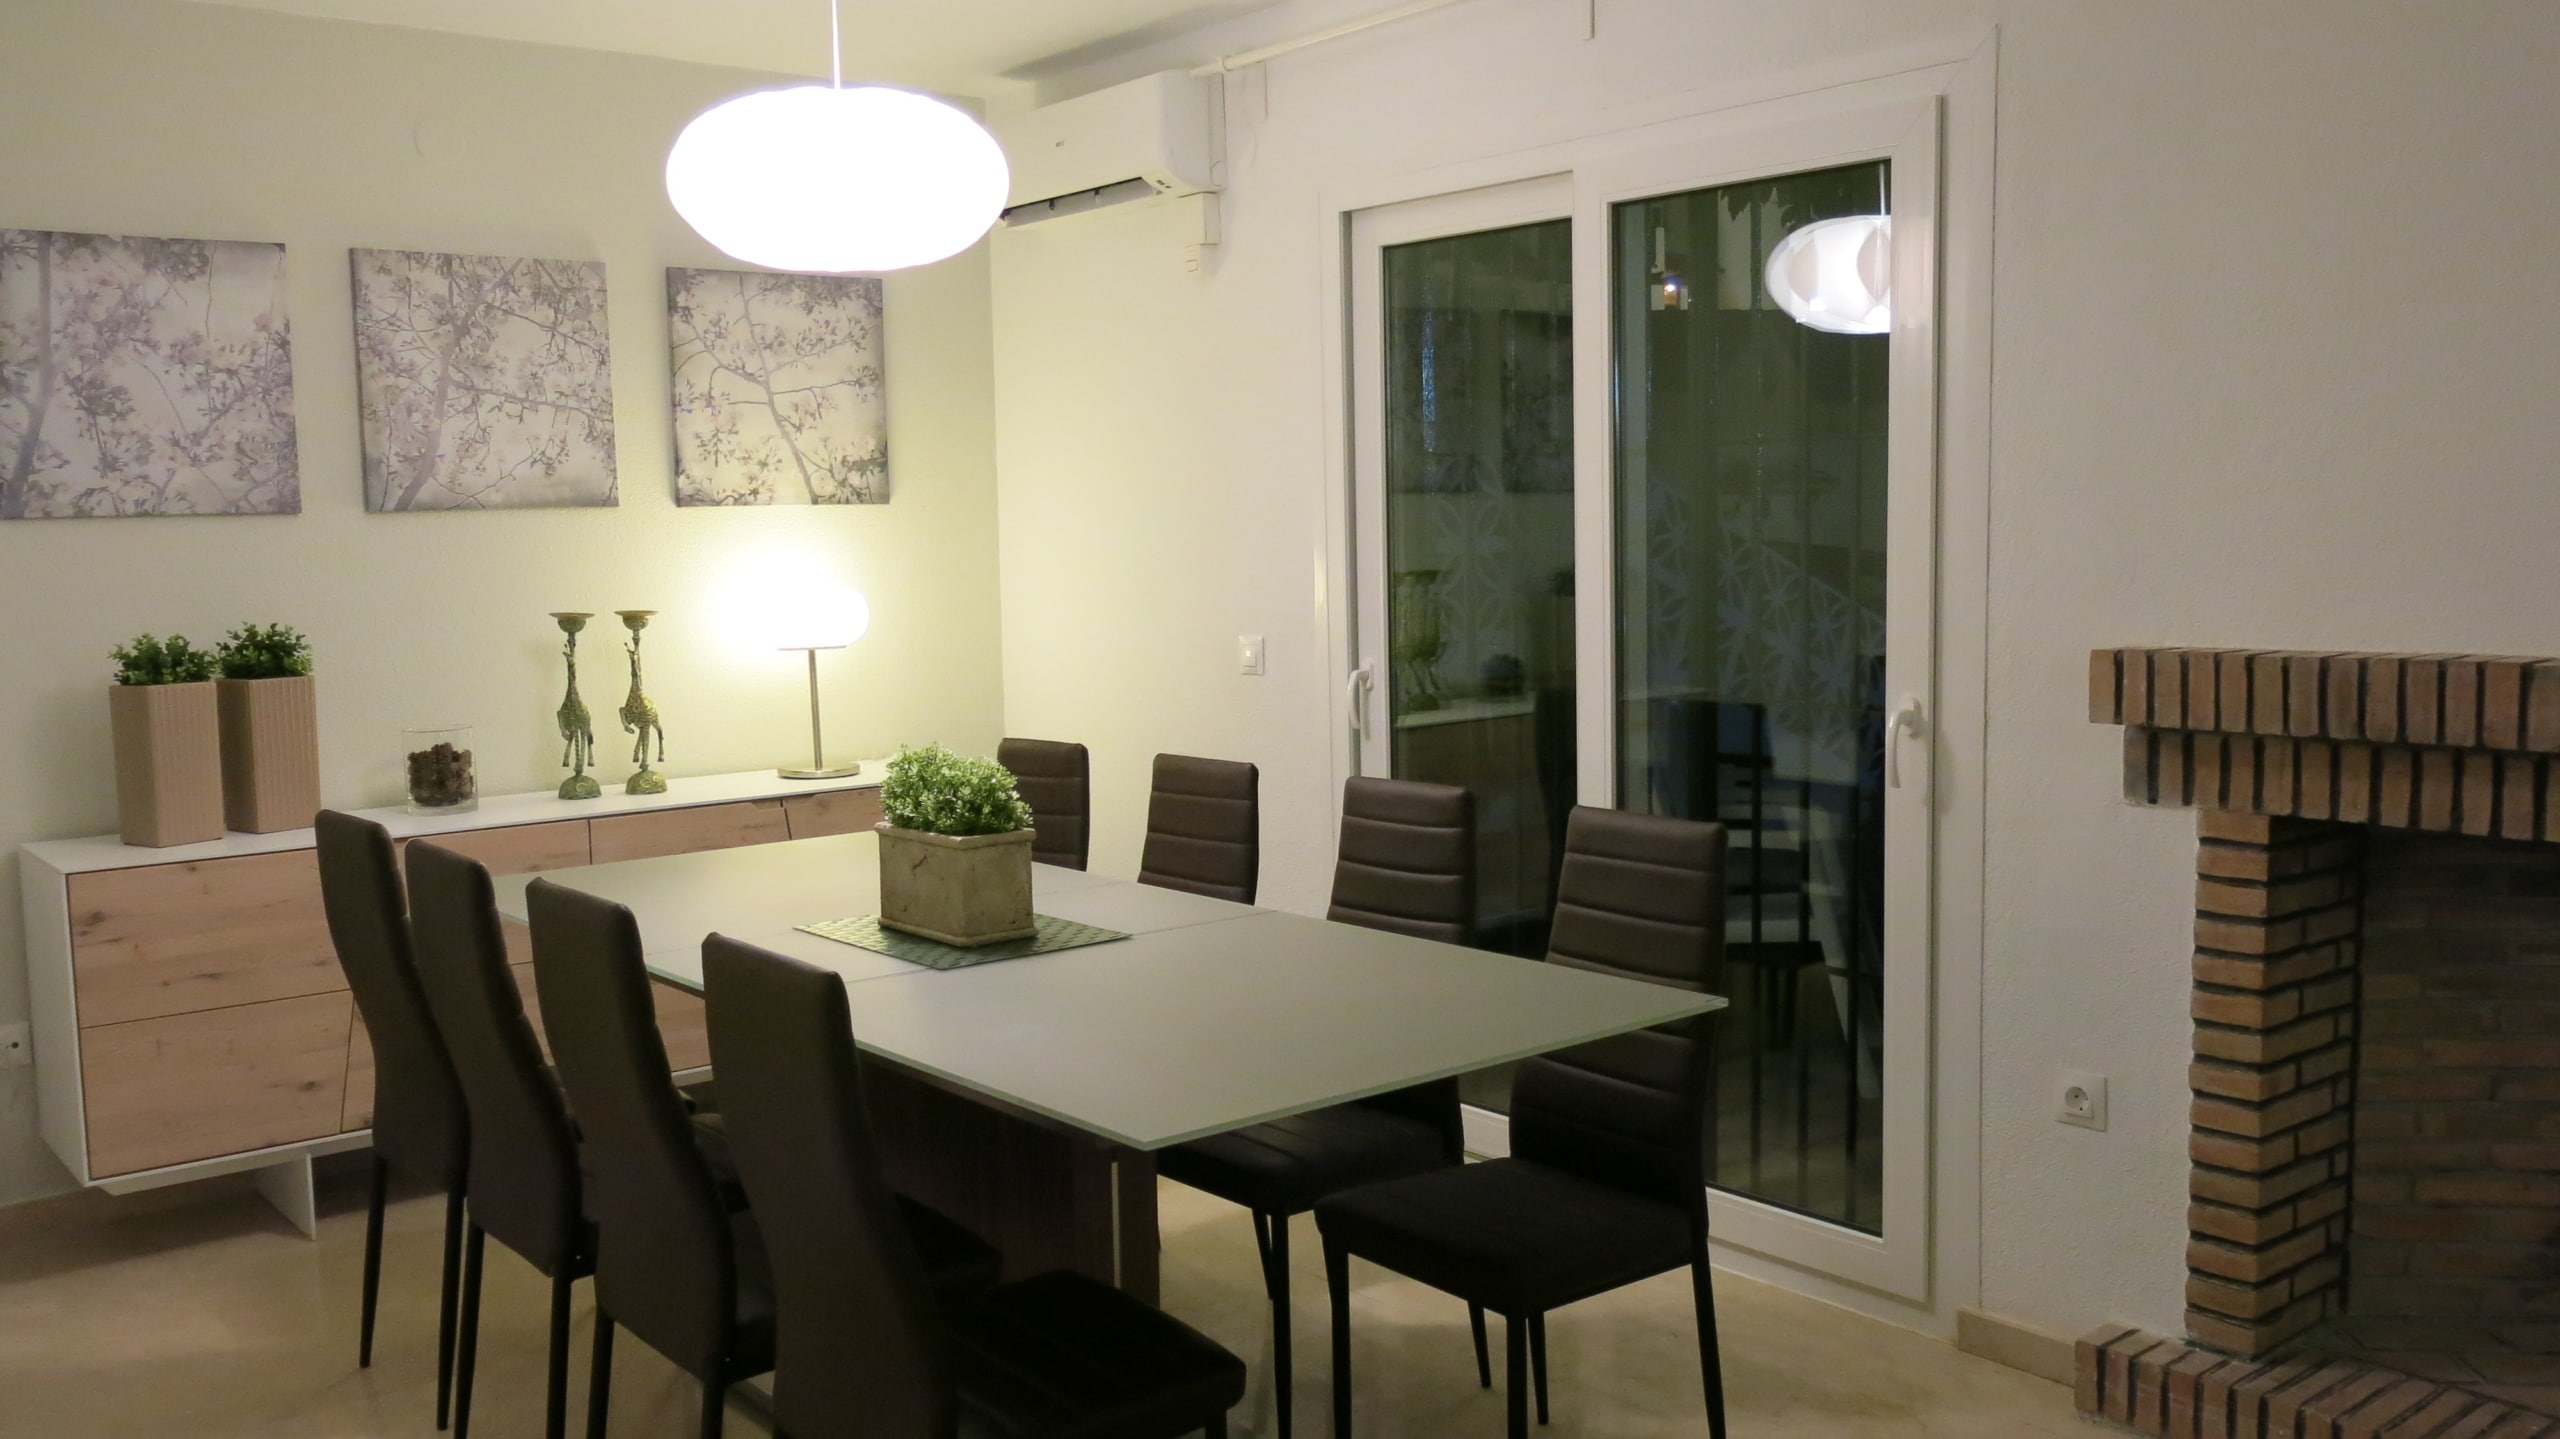 Dining area in the livingroom